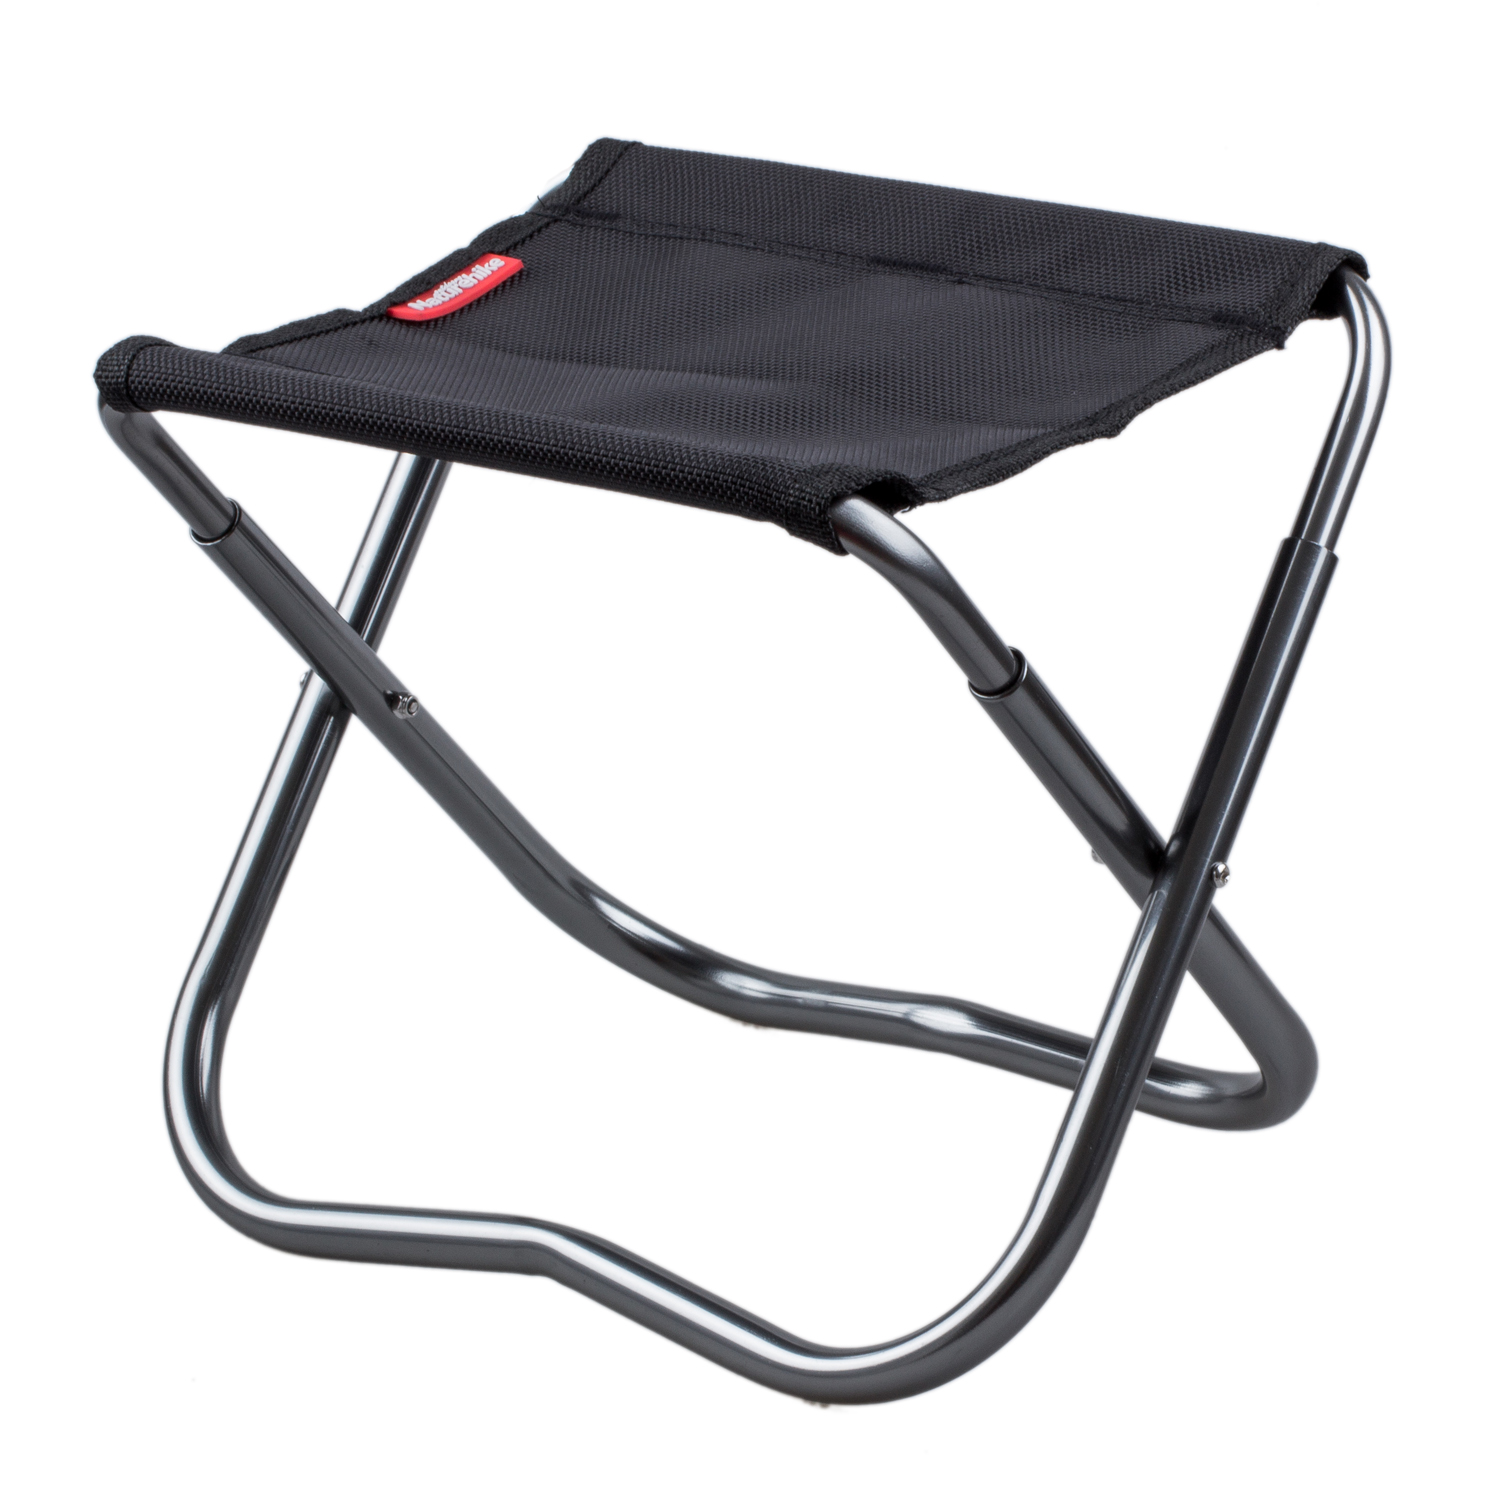 aluminum folding chairs potty chair with tray table portable oxford cloth outdoor patio